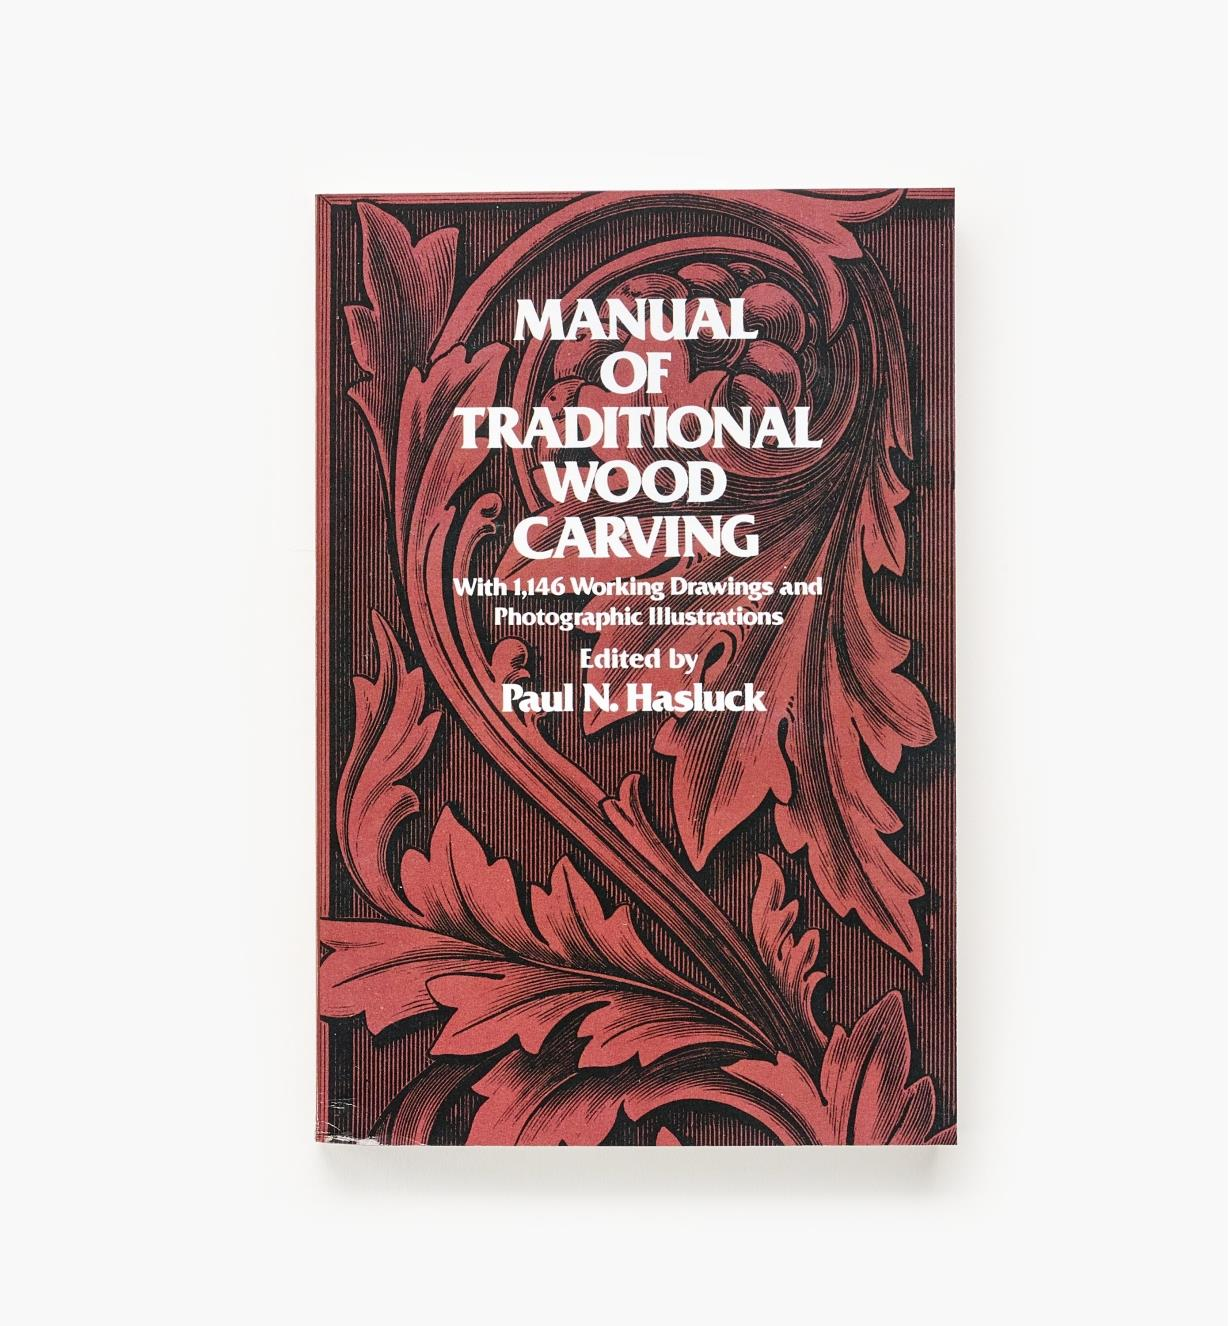 21L0210 - Manual of Traditional Wood Carving